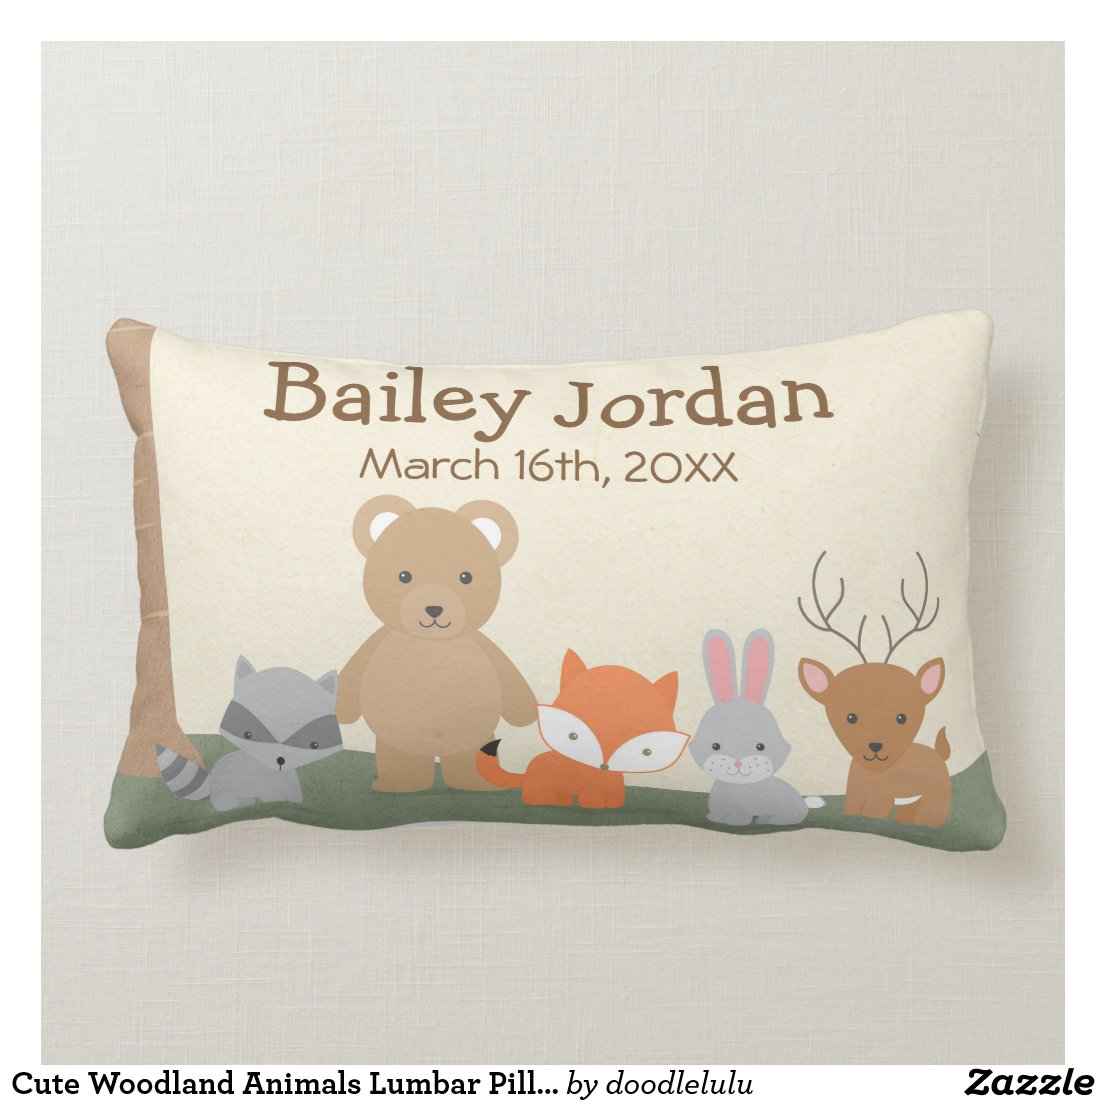 Cute Woodland Animals Lumbar Pillow